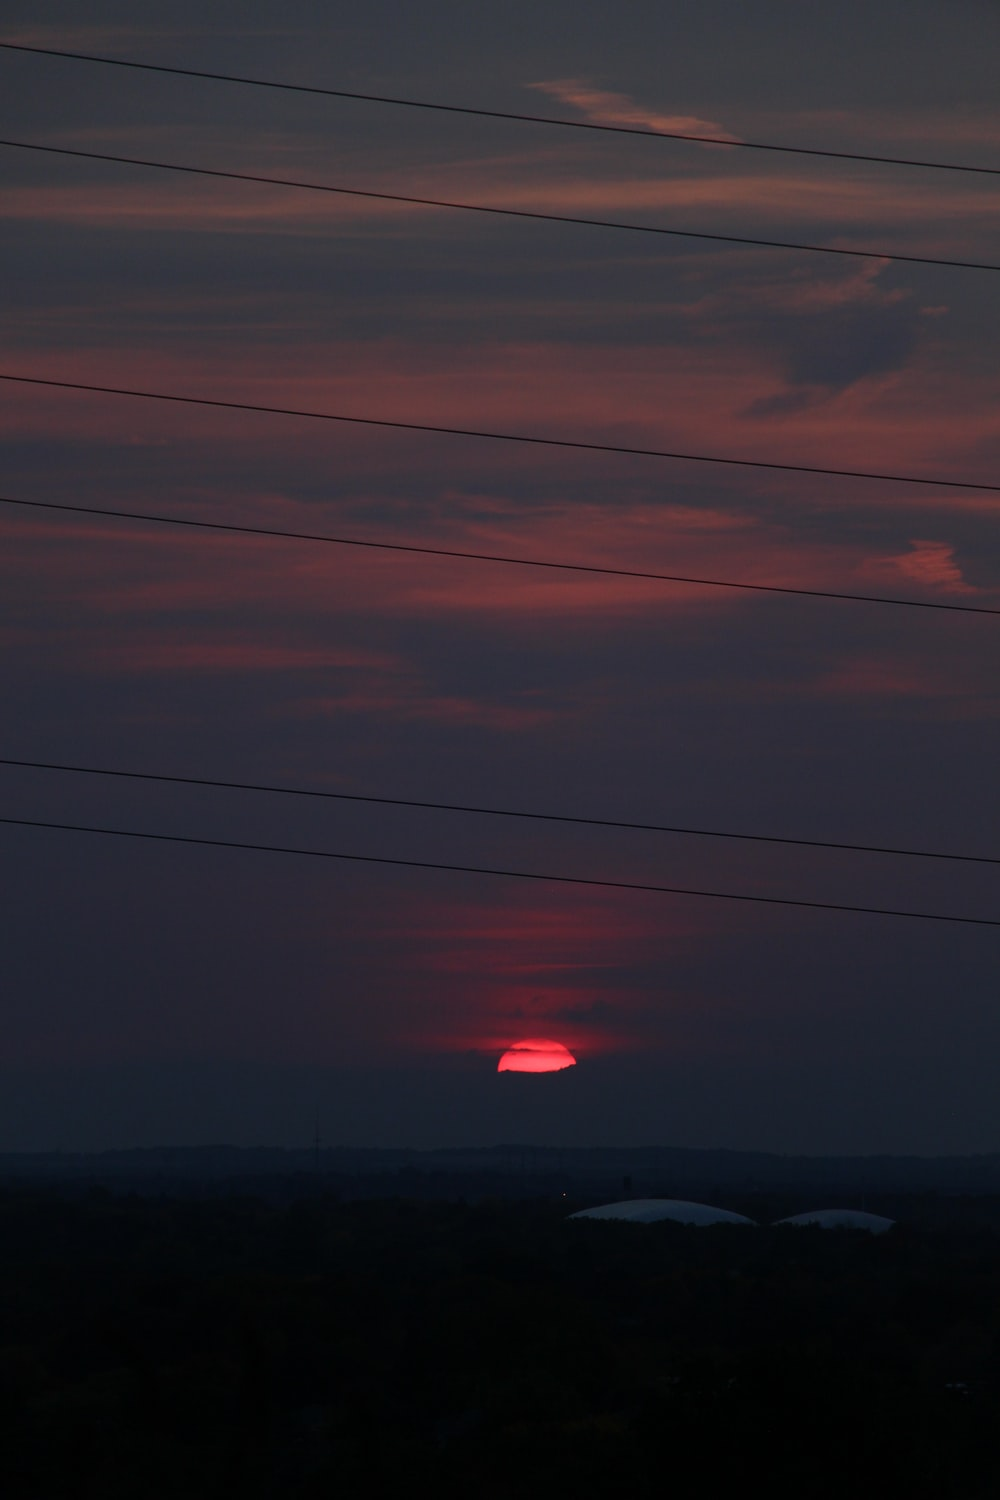 red hot air balloon over the clouds during sunset